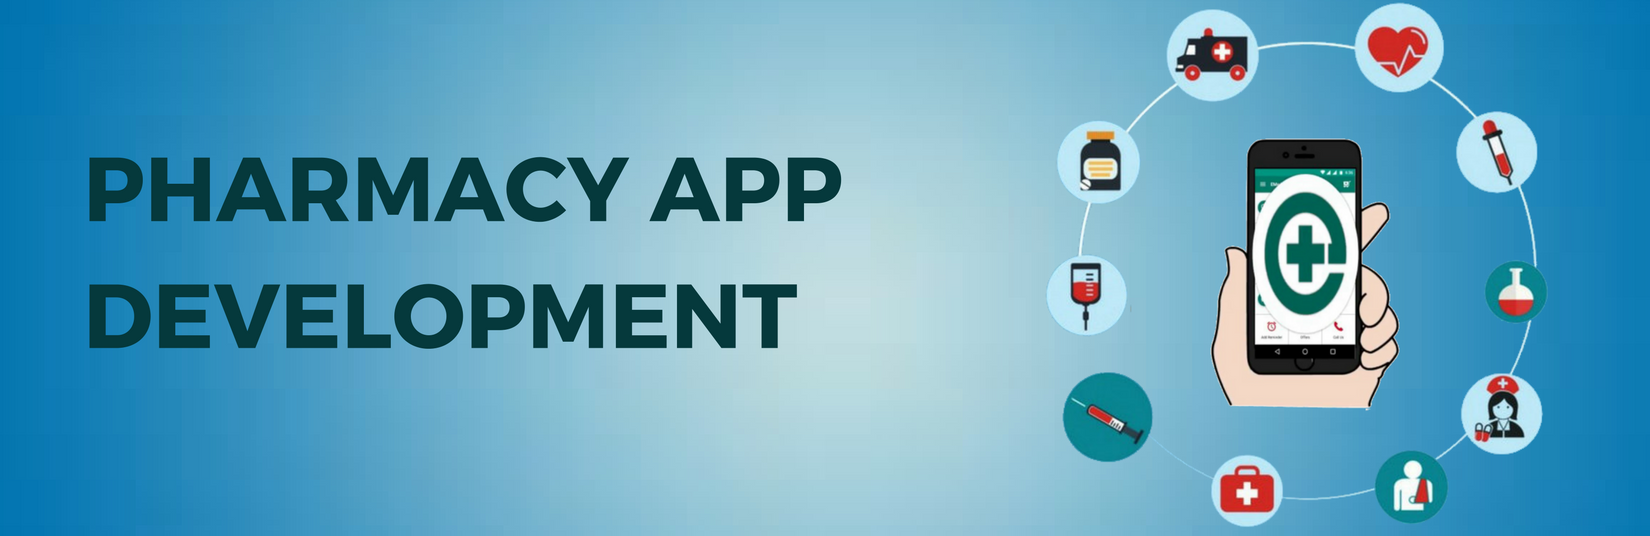 Pharmacy app development